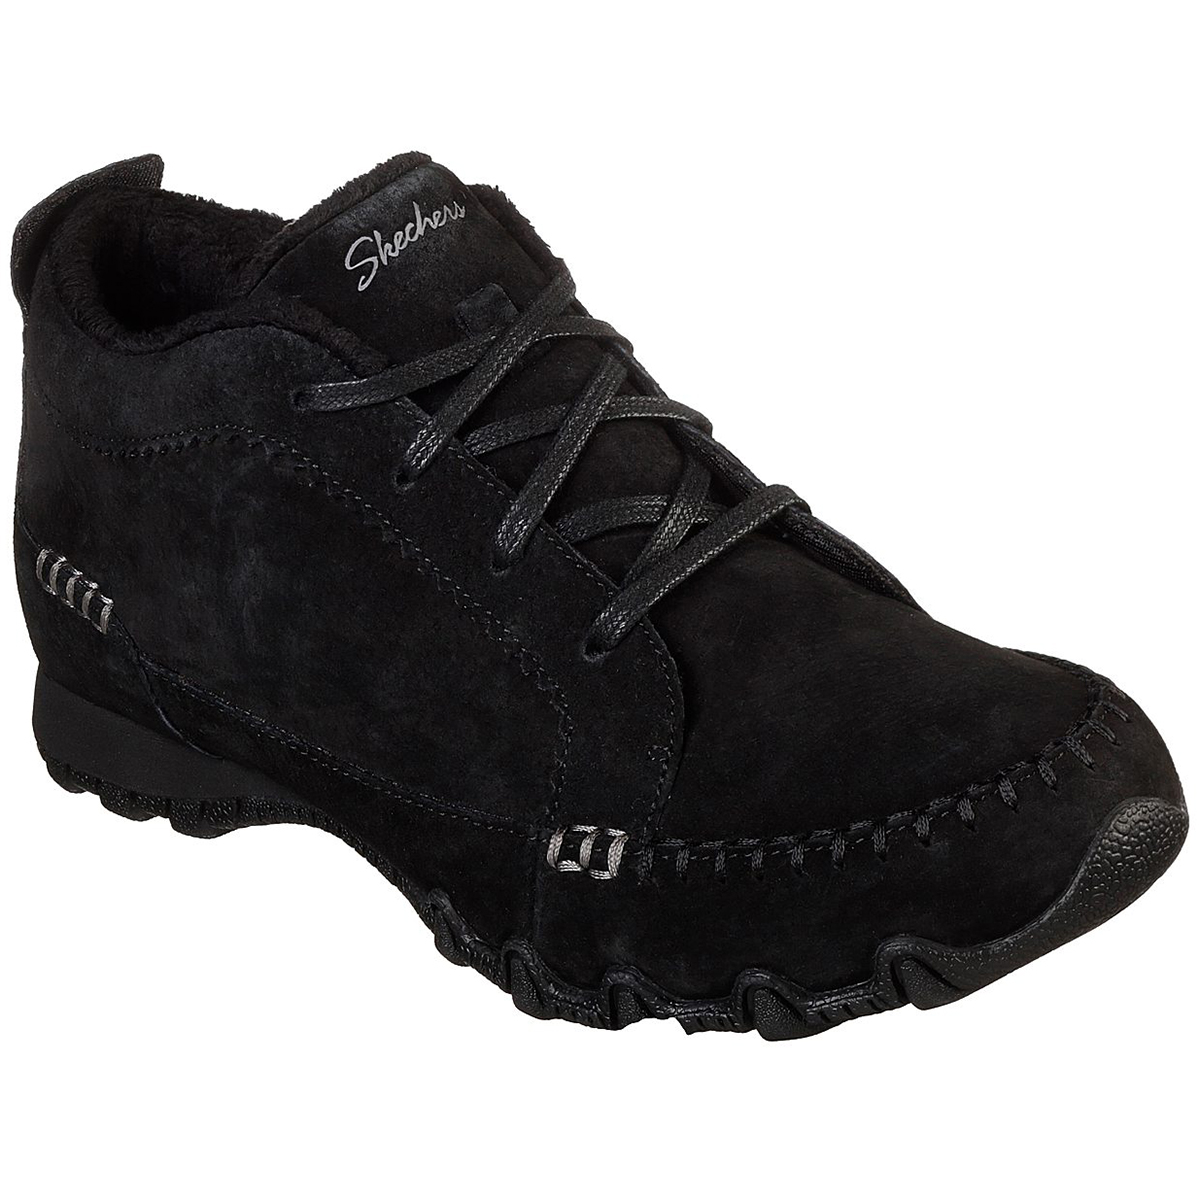 Skechers Women's Relaxed Fit Bikerslineage Lace-Up Chukka Boots - Black, 7.5